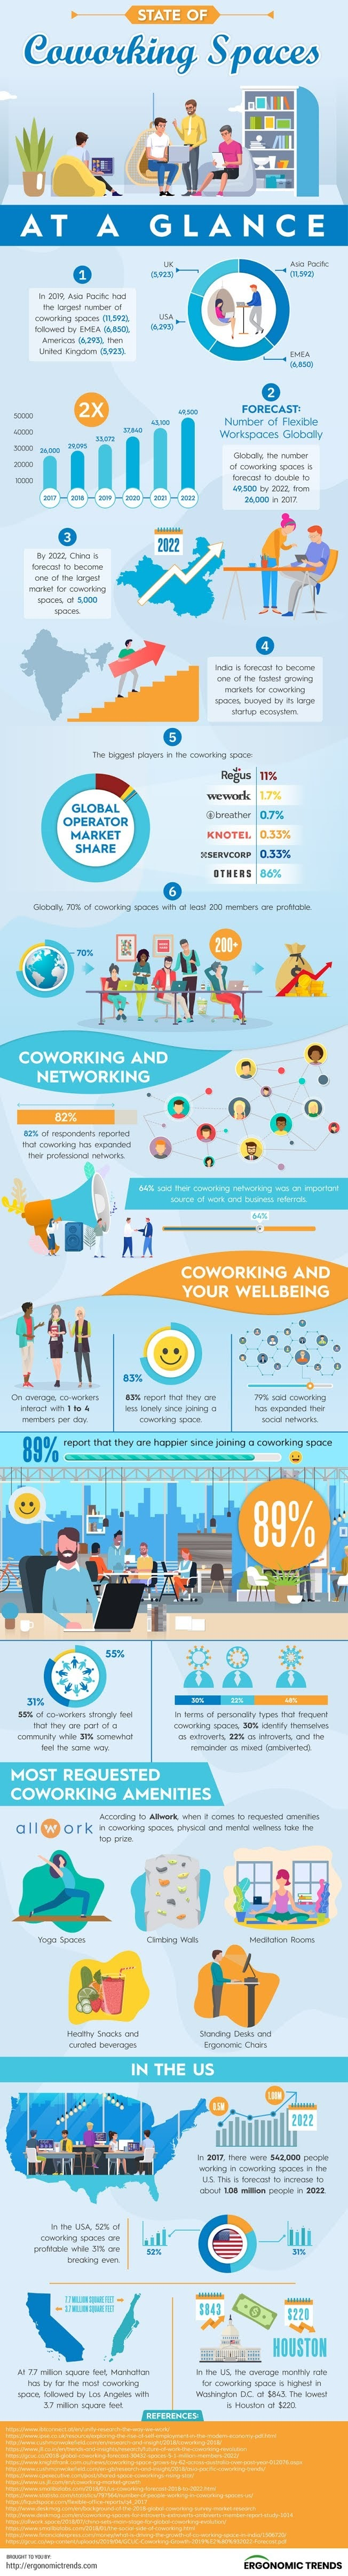 Rising trend of co-working spaces #infographic